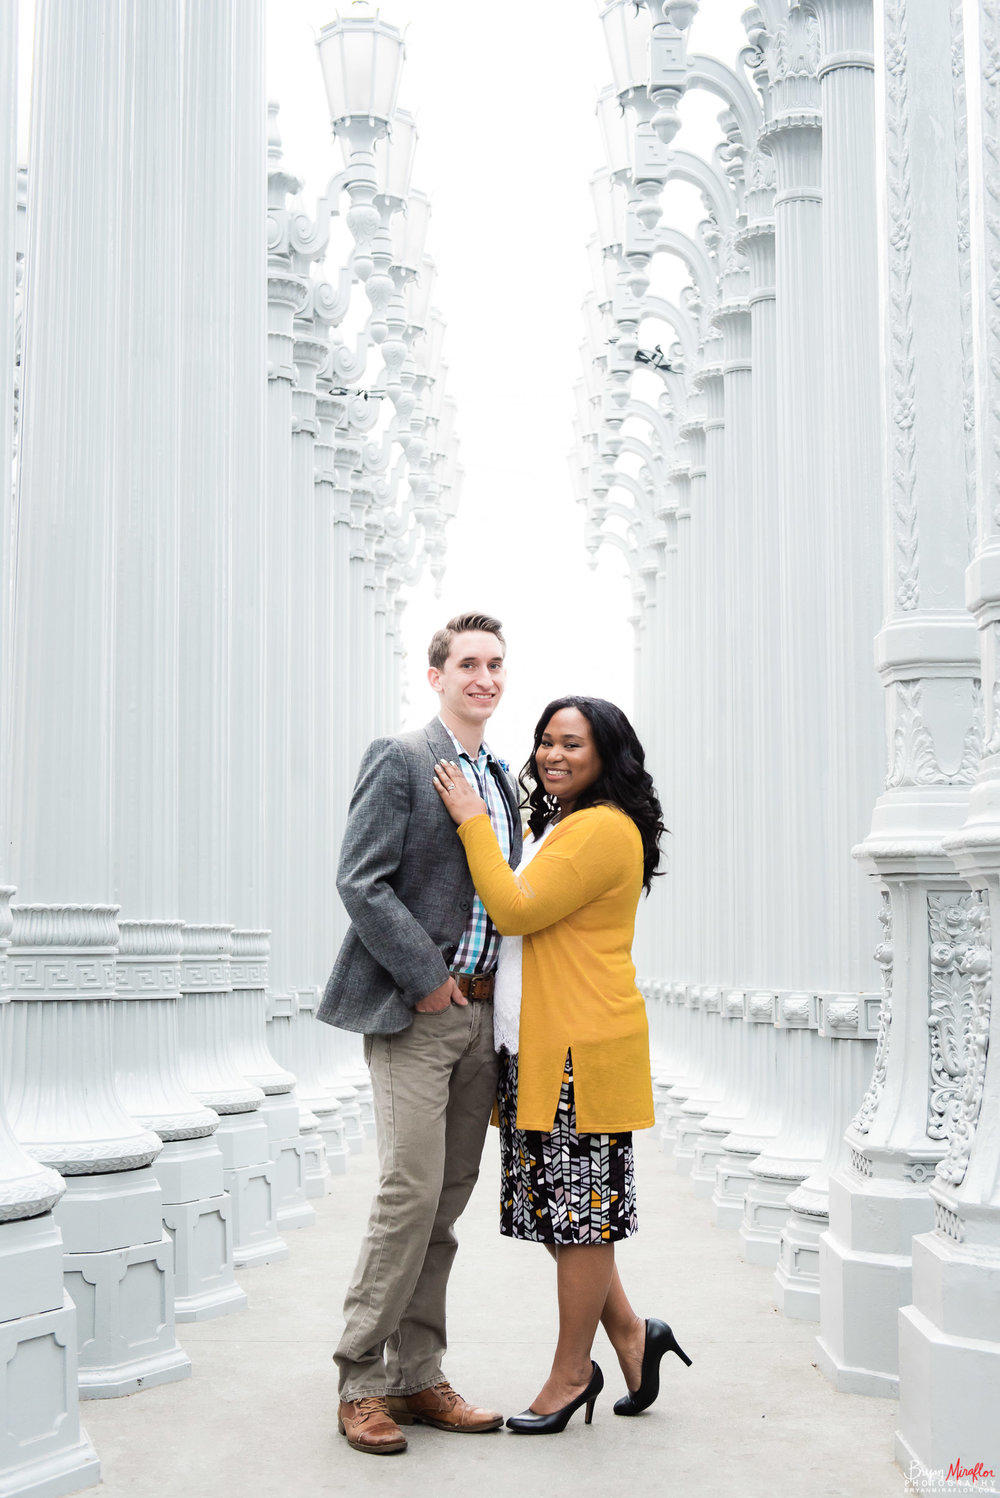 Bryan-Miraflor-Photography-Vanessa-Tommy-LACMA-DTLA-Engagement-Photoshoot-20161210-77.jpg